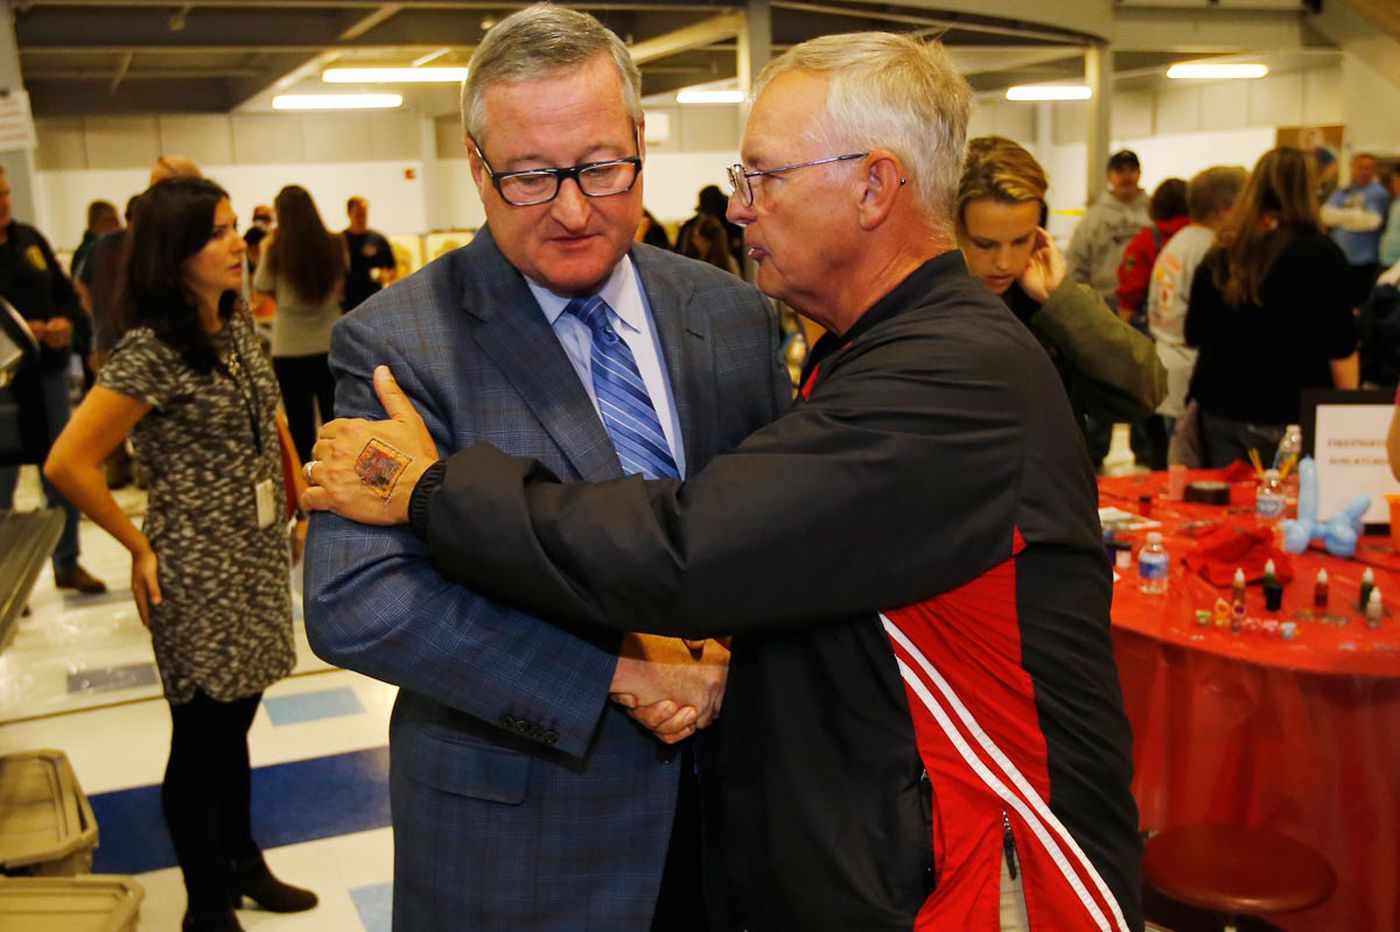 Evolution of a 'hothead': Jim Kenney makes his case